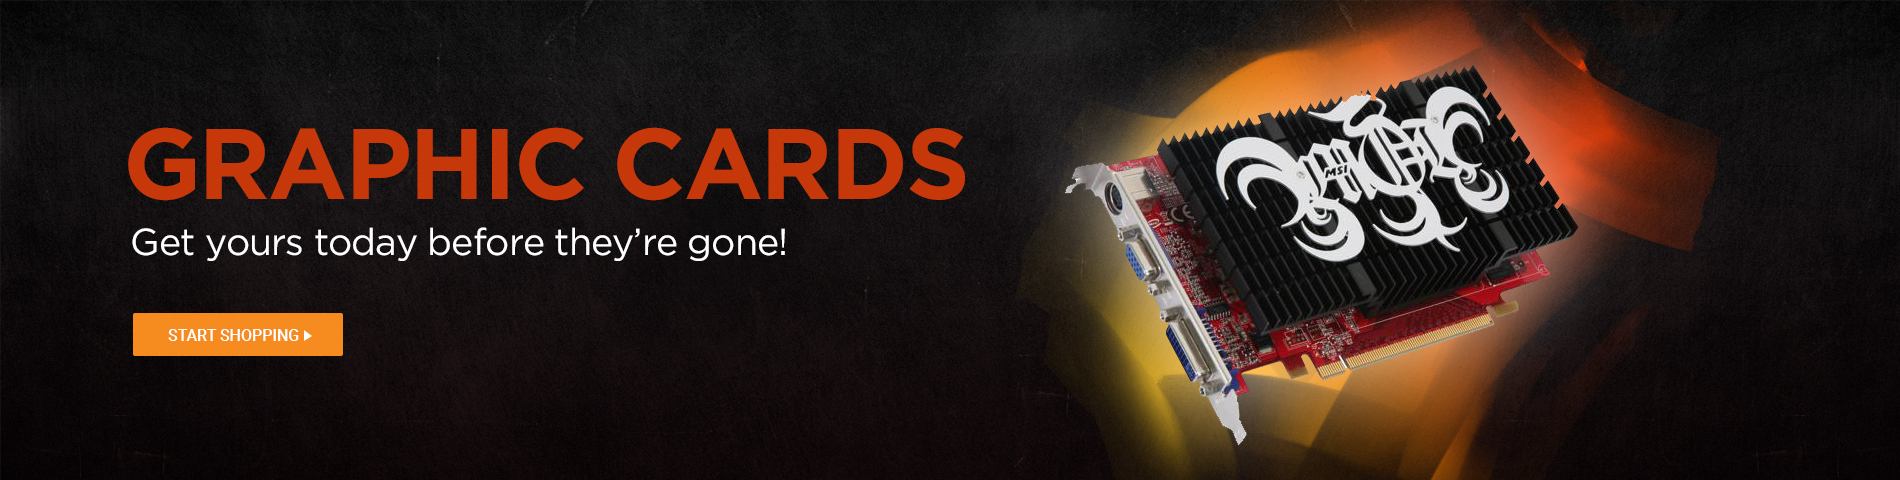 Graphic Cards - Get them before they're gone!